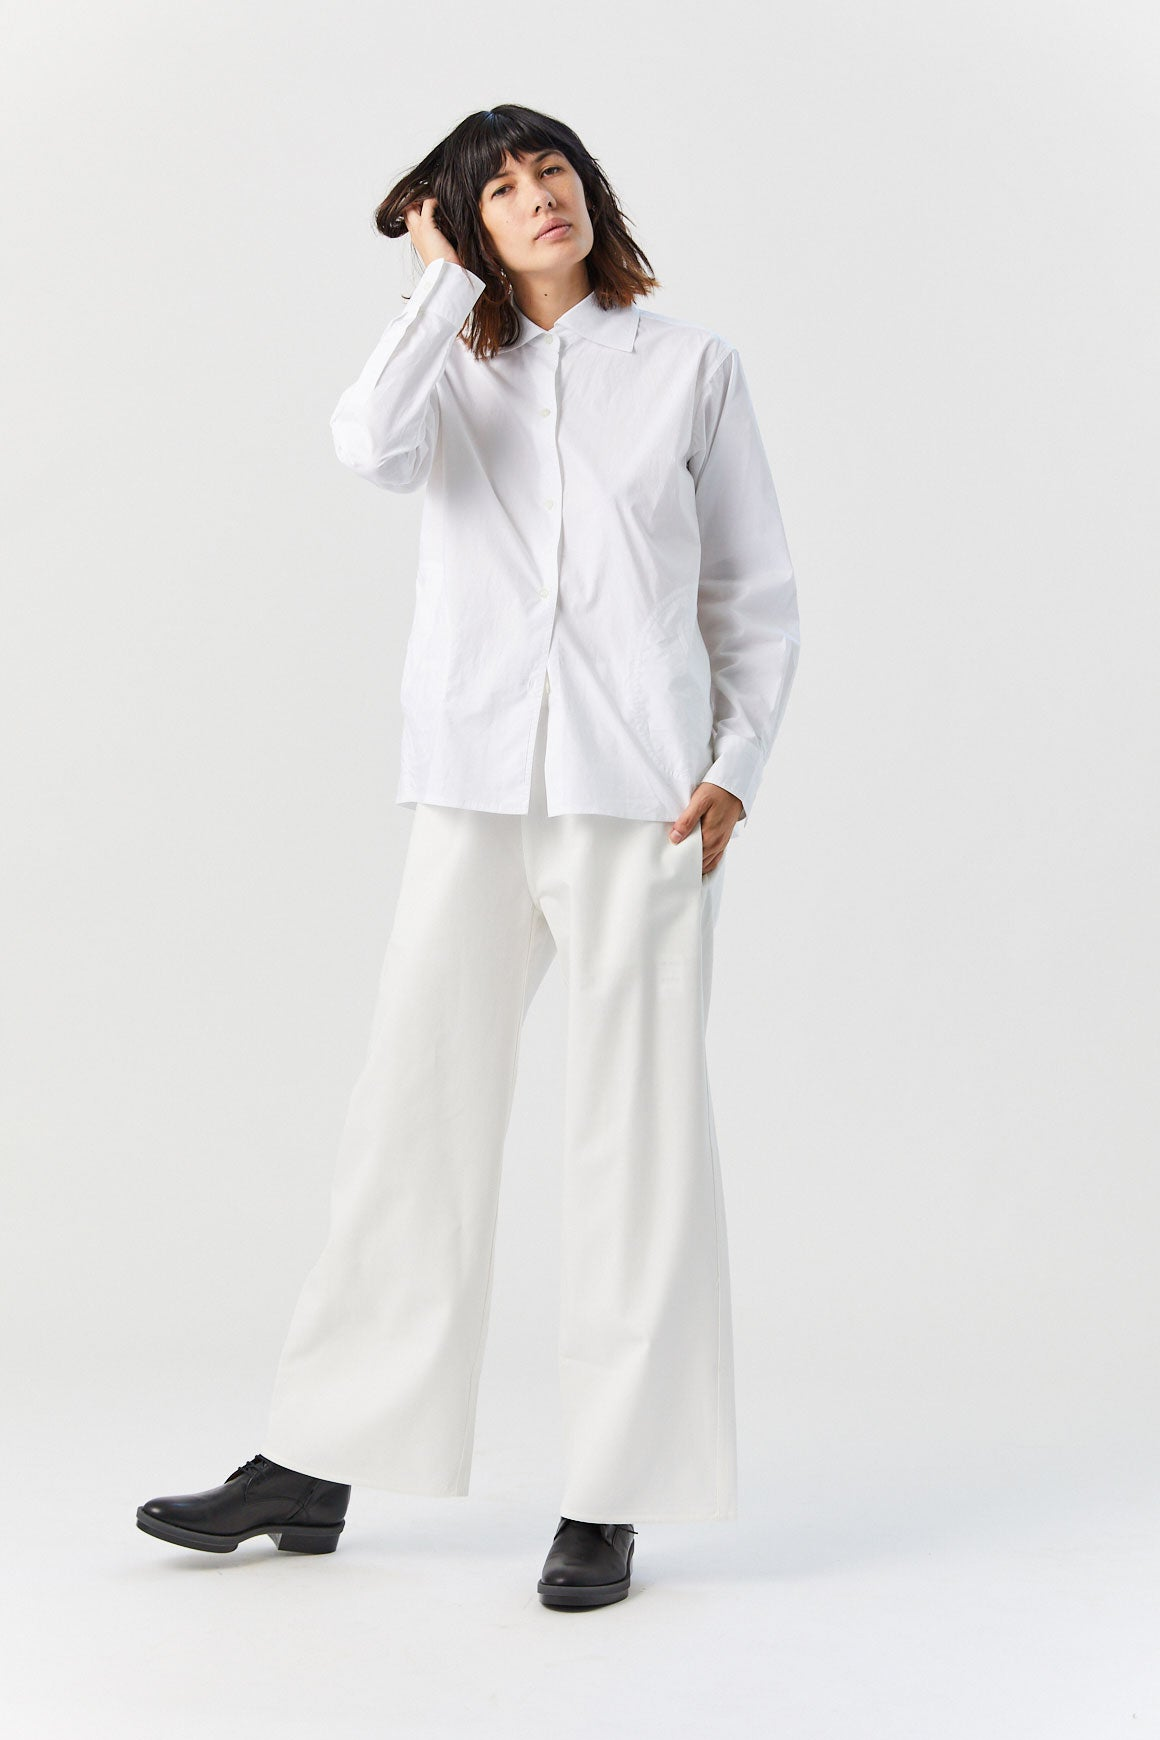 SOFIE D'HOORE - Billy Button Down, White